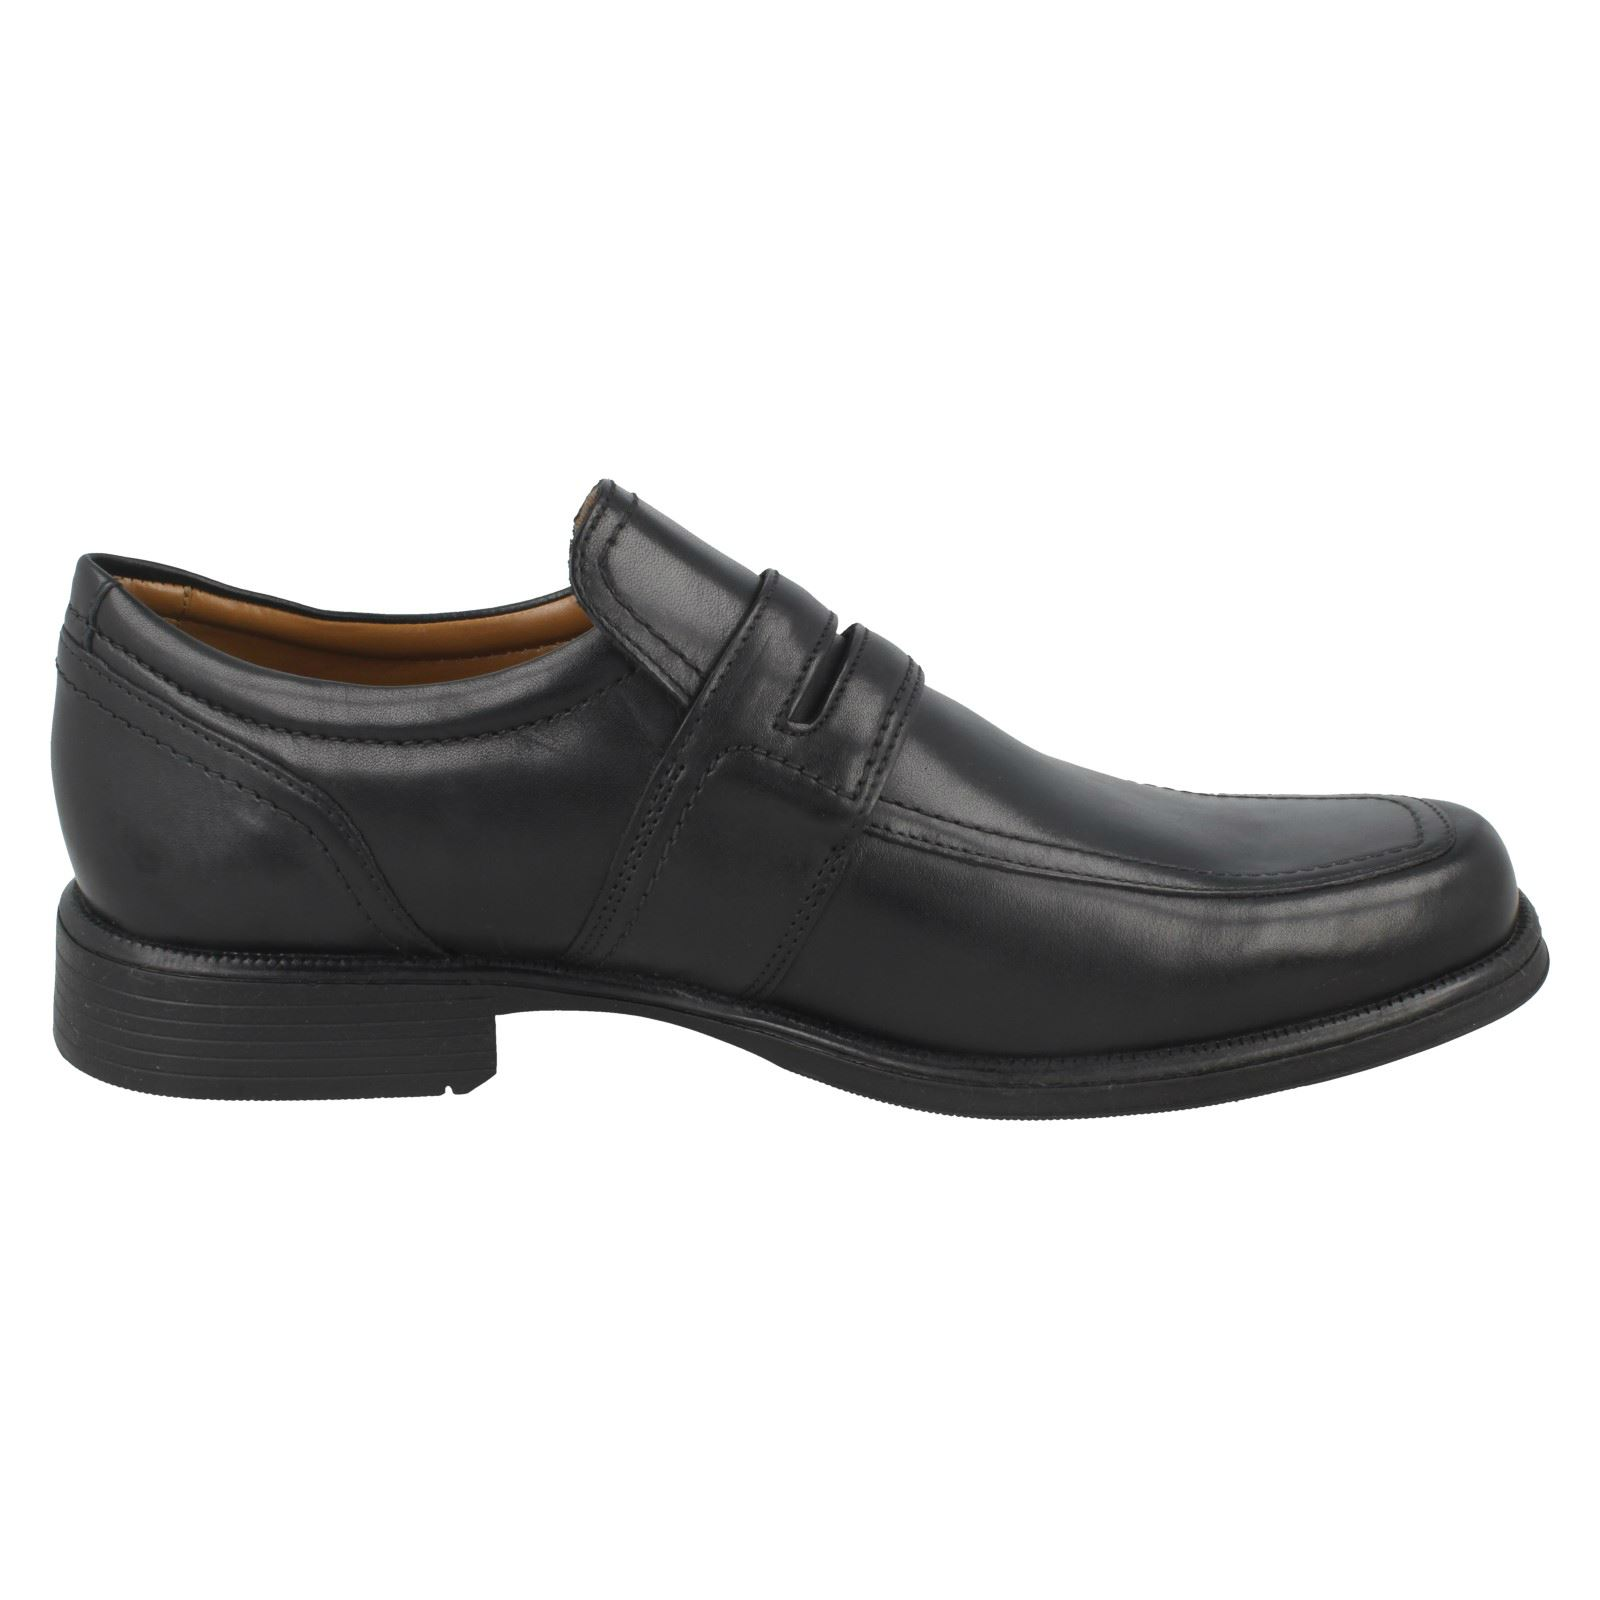 Herren Clarks Ankle Formal Cushioning Formal Ankle Slip On Leder Schuhes Huckley Work ff89d7